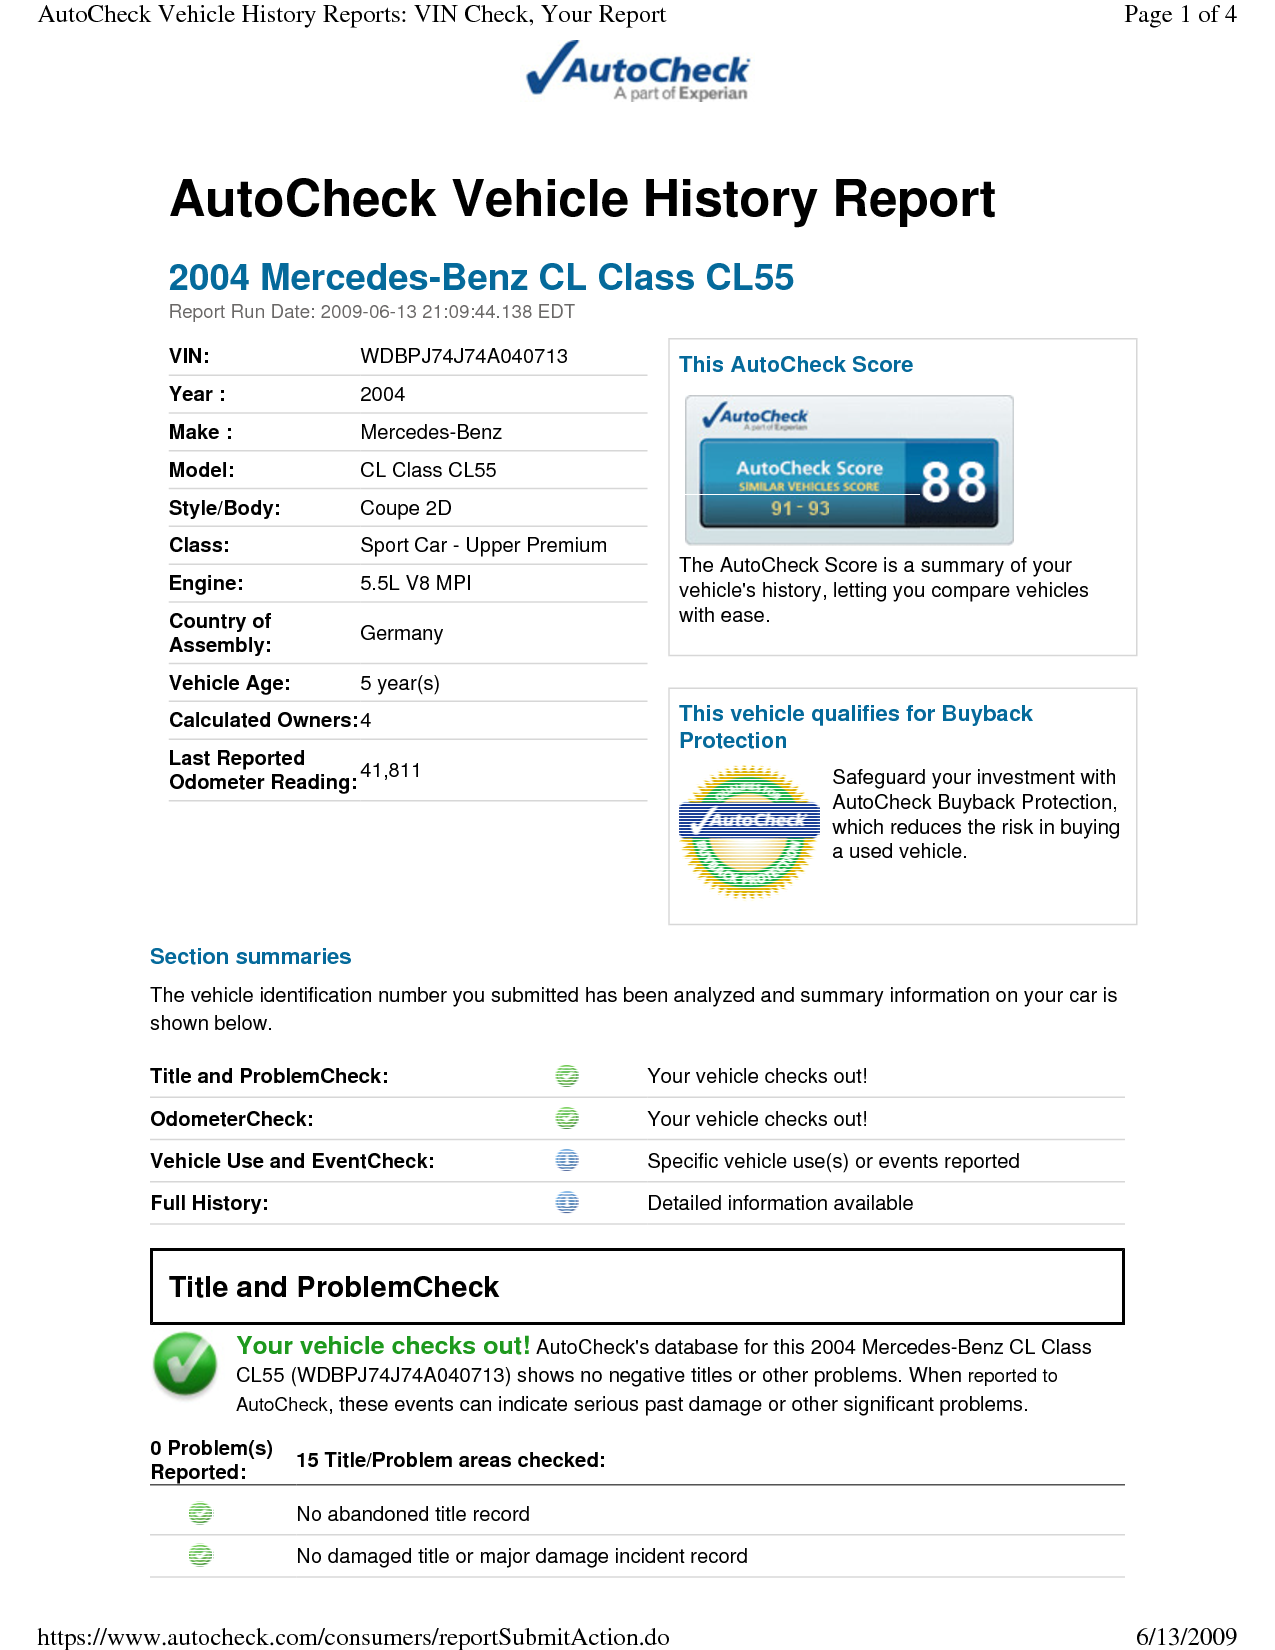 Carfax Corporate Phone Number New Carfax Vs Autocheck Reports What You Don T Know